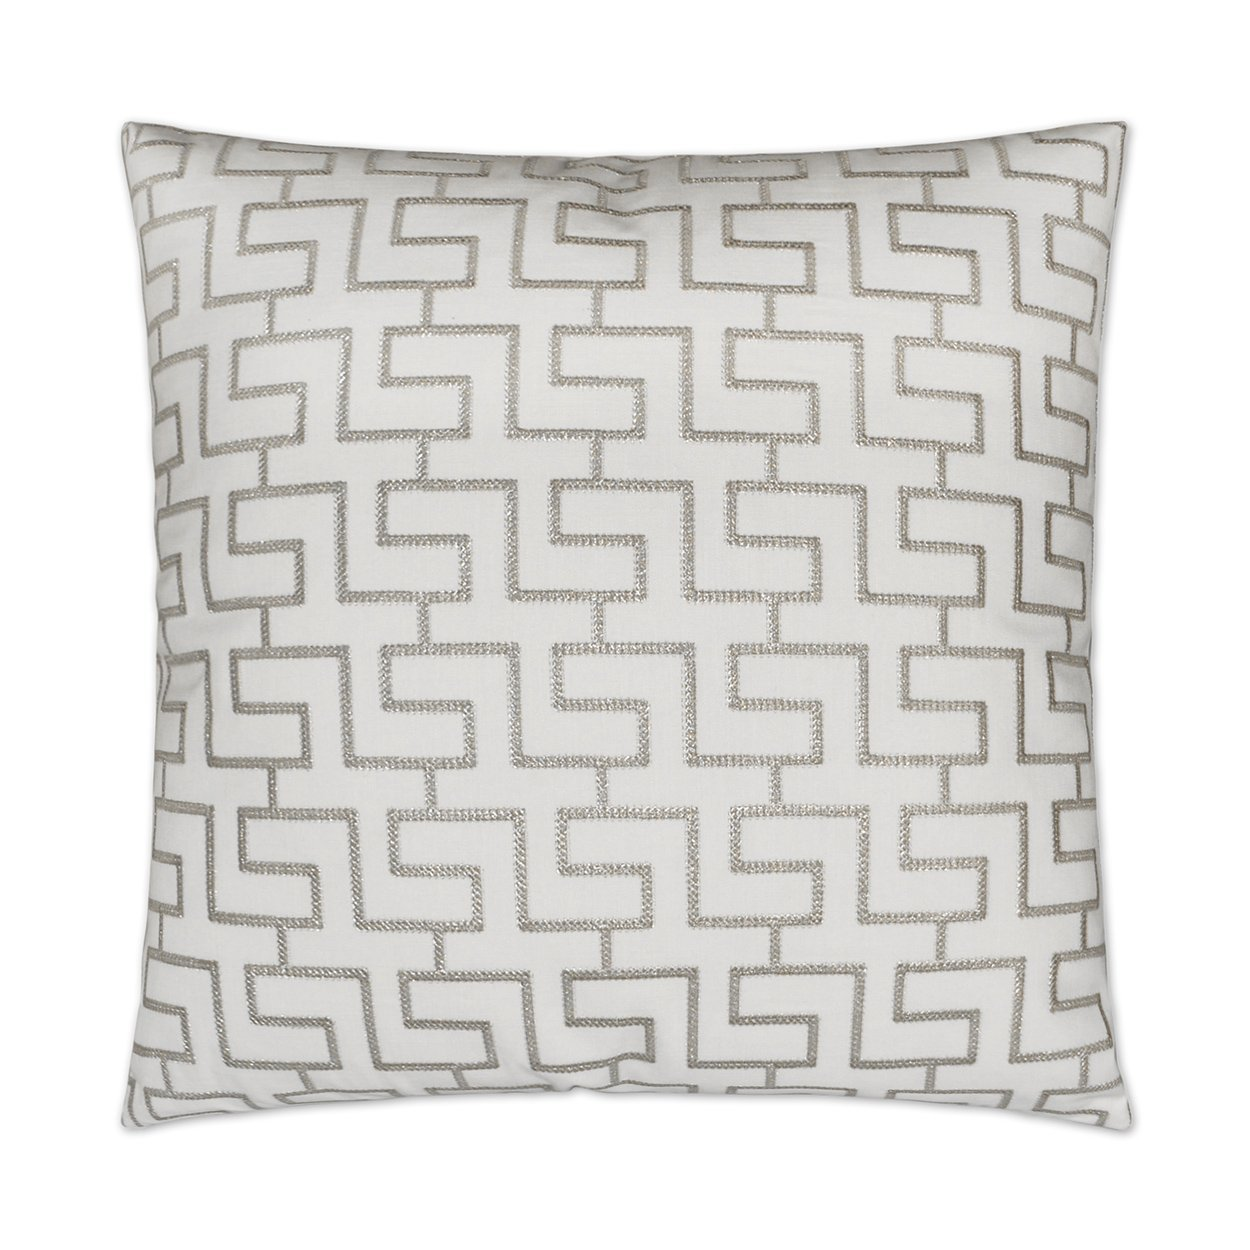 Seam Allowance Decorative Pillow